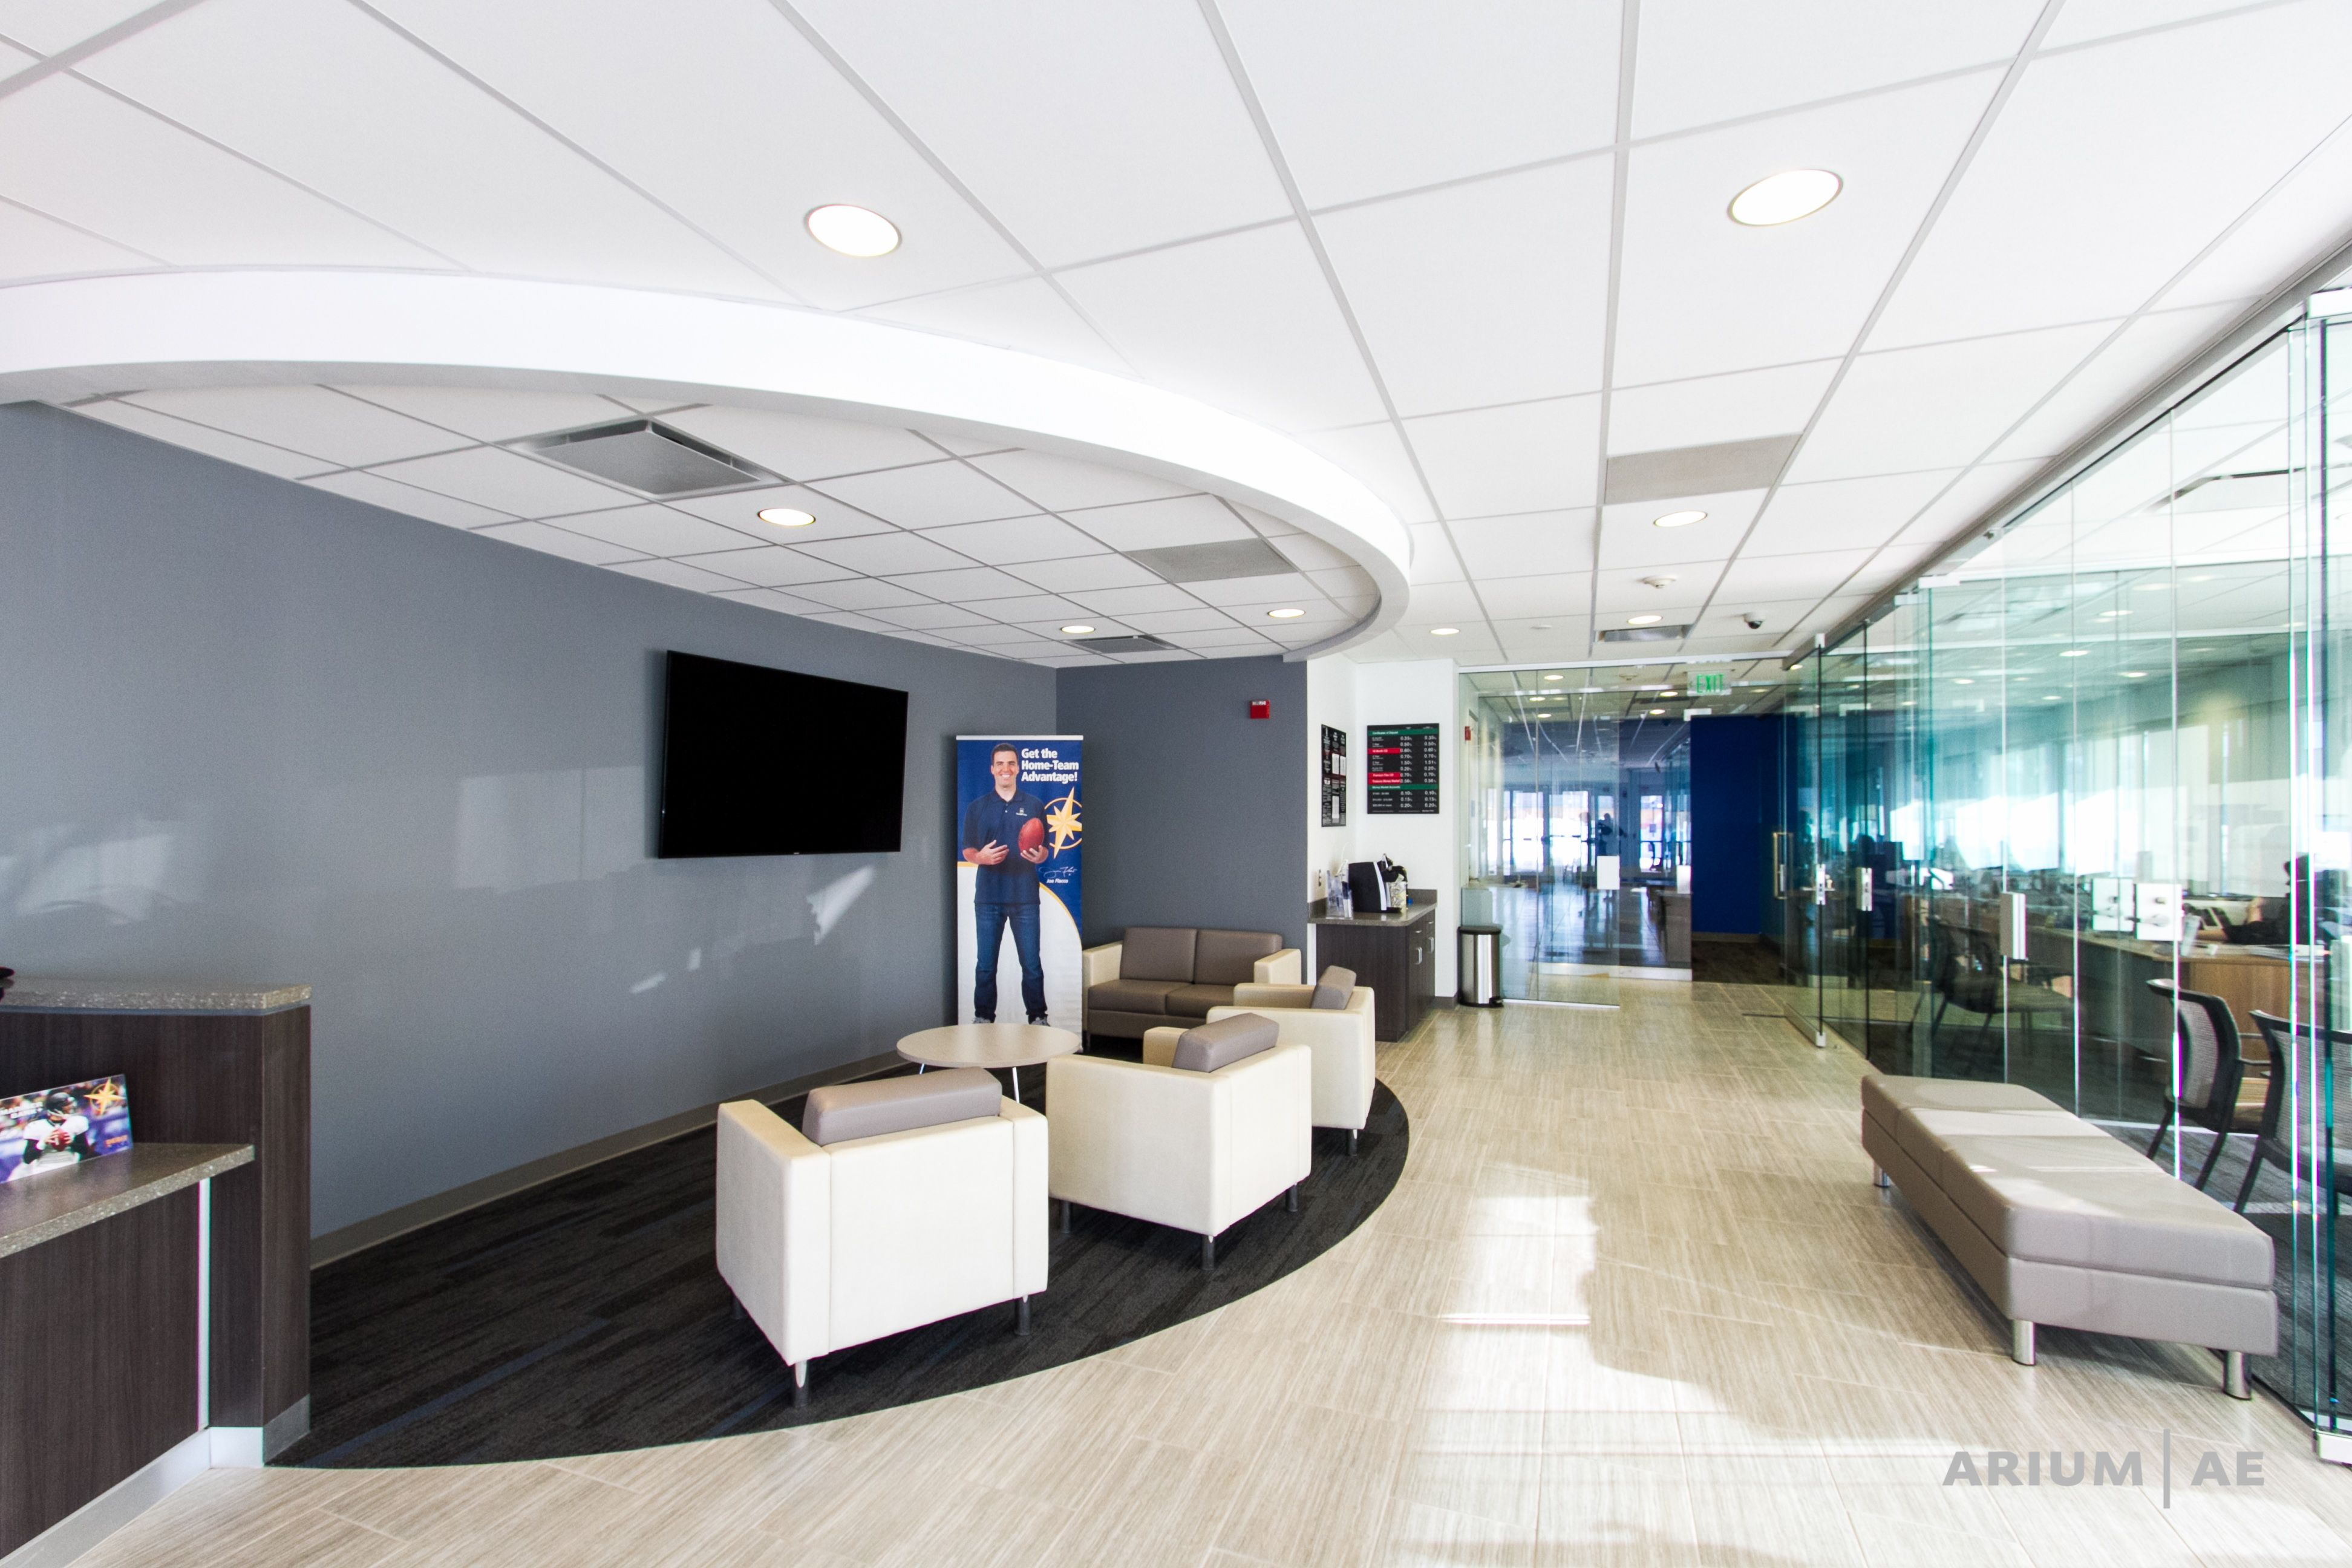 Interior Bank Design Glass Walls Waiting Area With Images